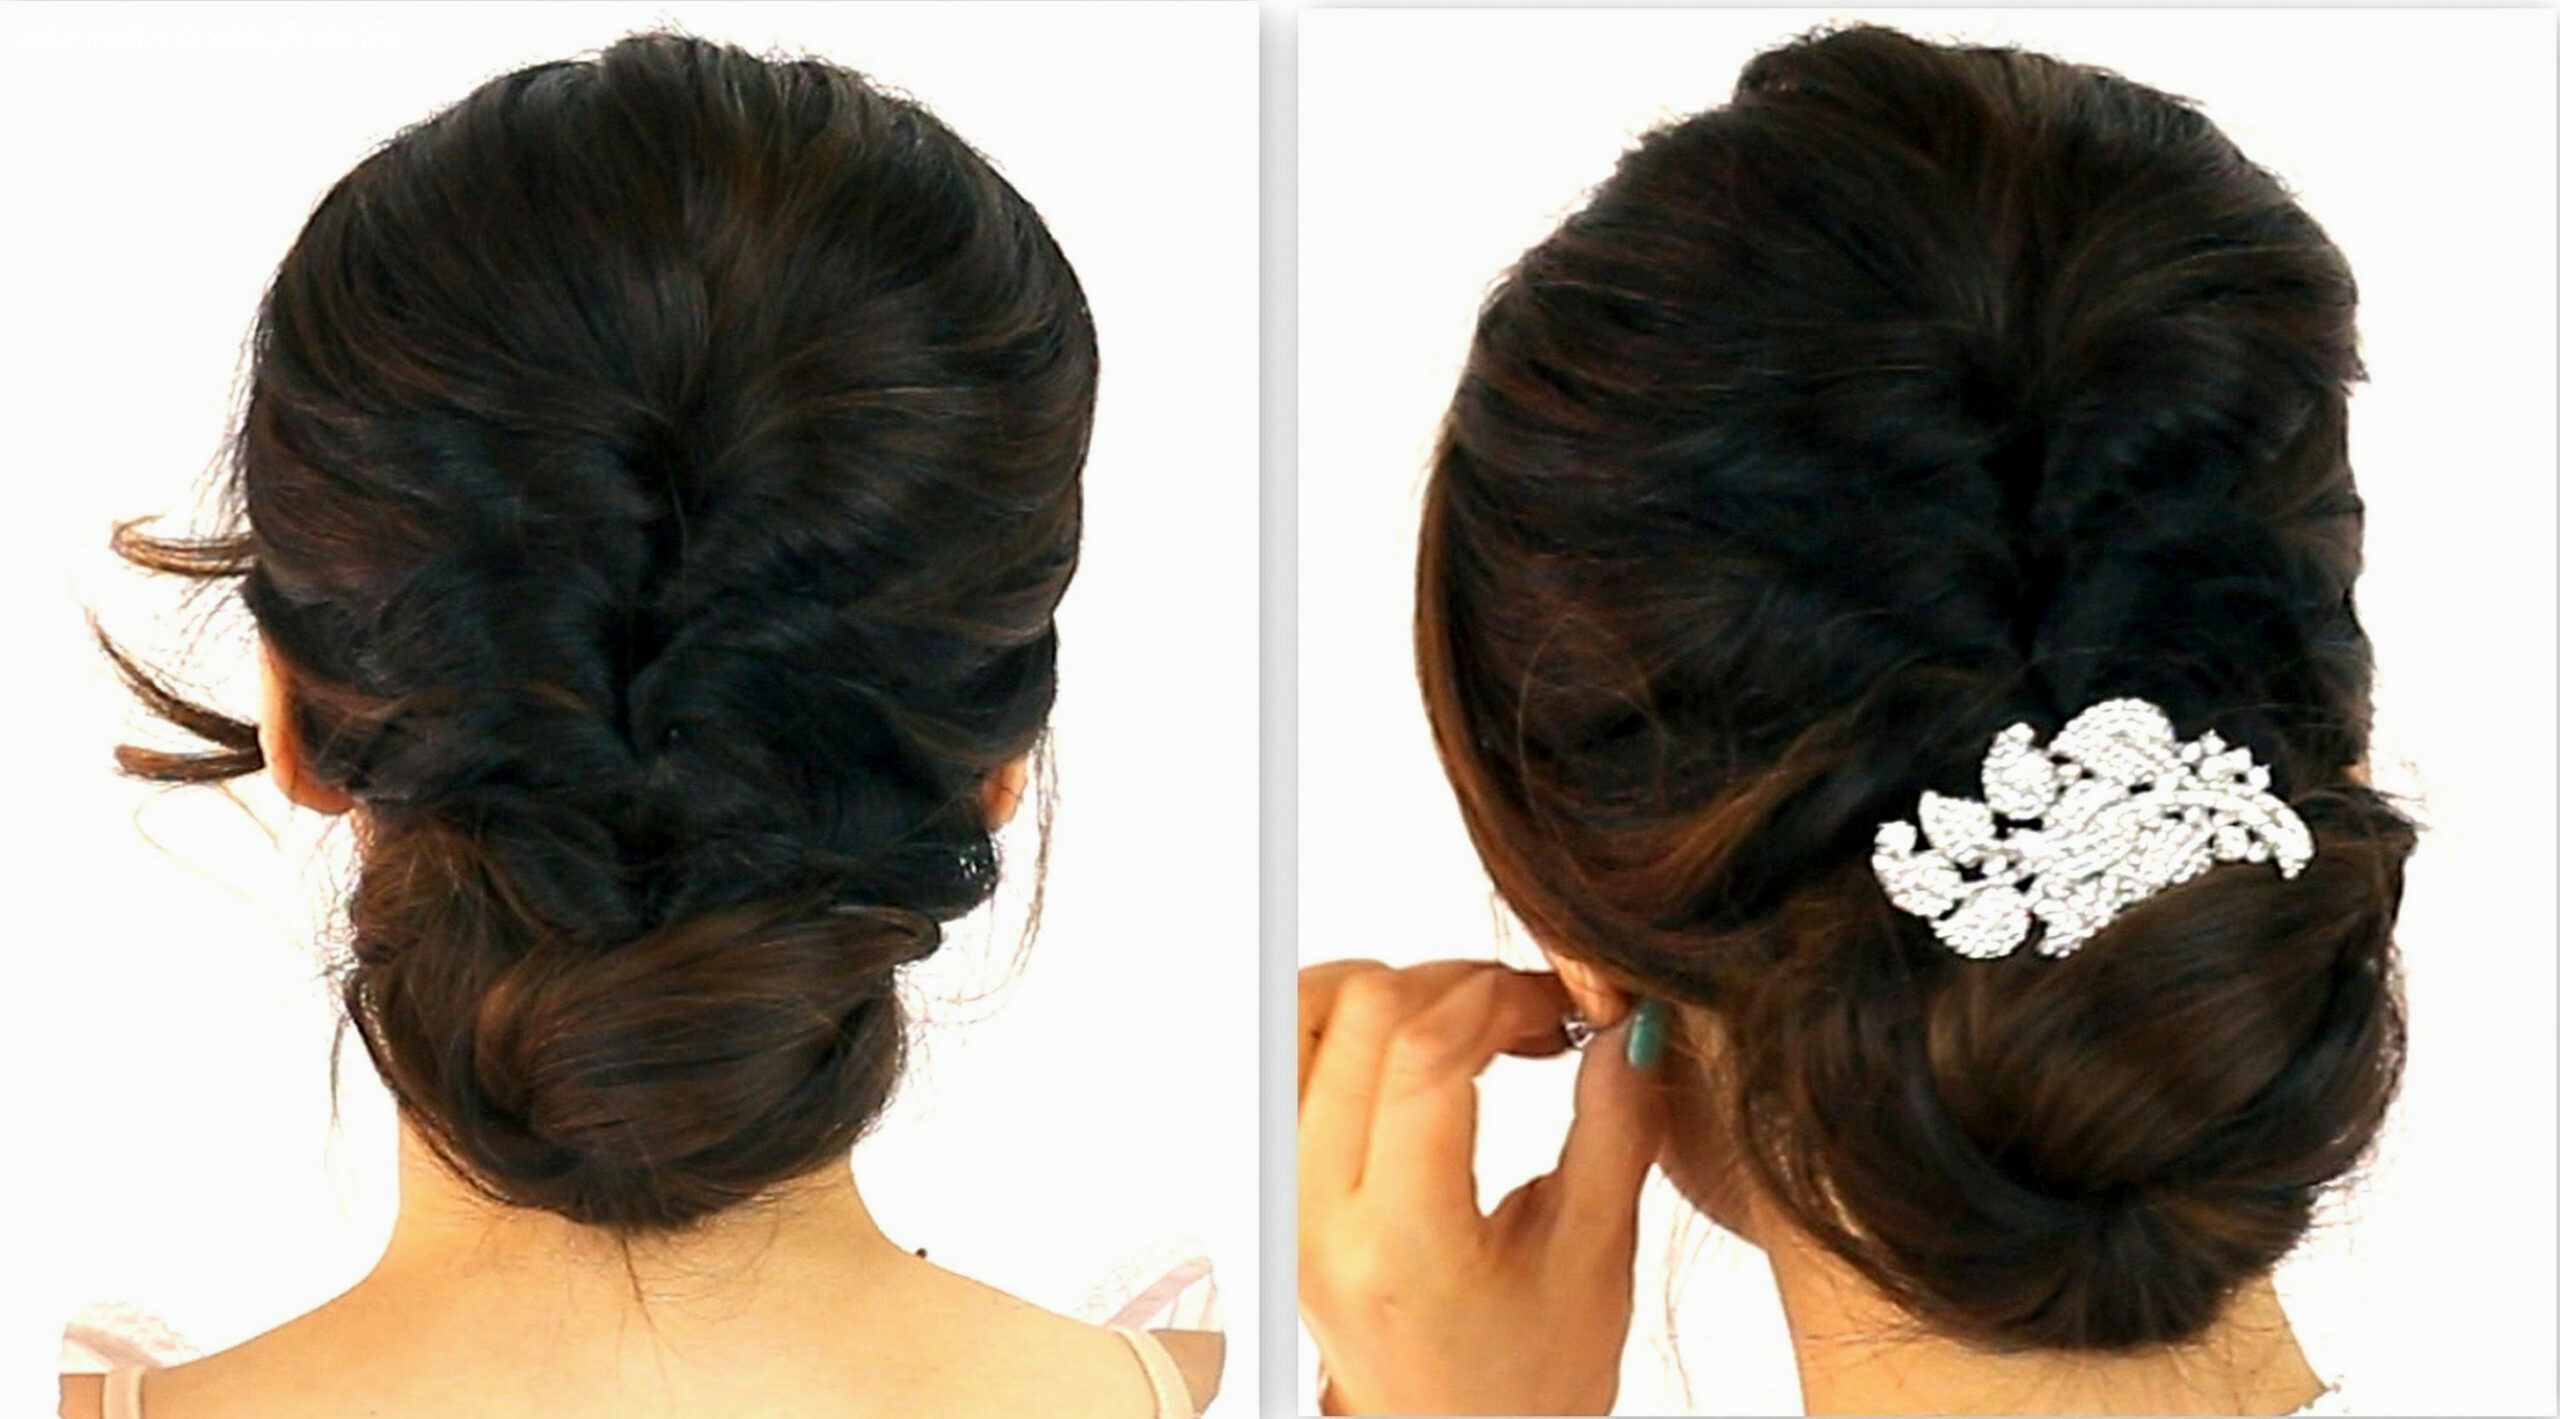 Indian wedding hairstyles for short hair google search (with